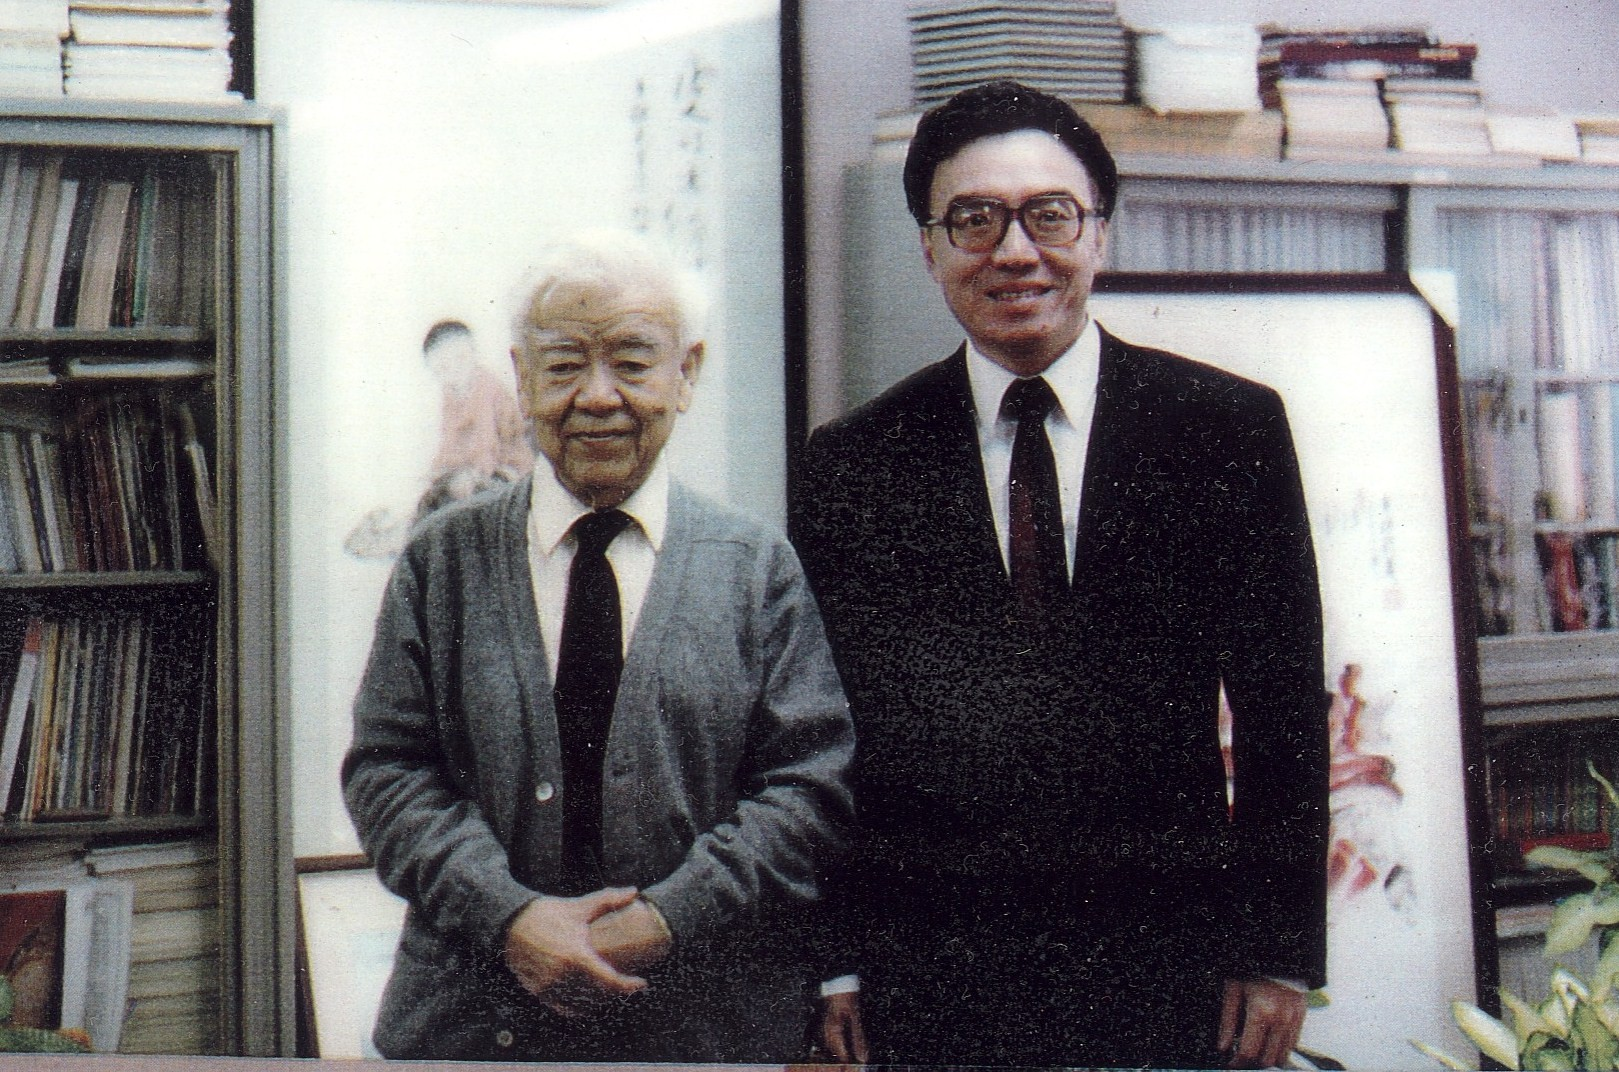 Ta-You Wu and Hugh Ching (founders of Post-Science Institute with C. V. Ramamoorthy and T. L. Kunii). Click to learn about Ta-You Wu and his collaboration with Hugh Ching and Post-Science Institute.